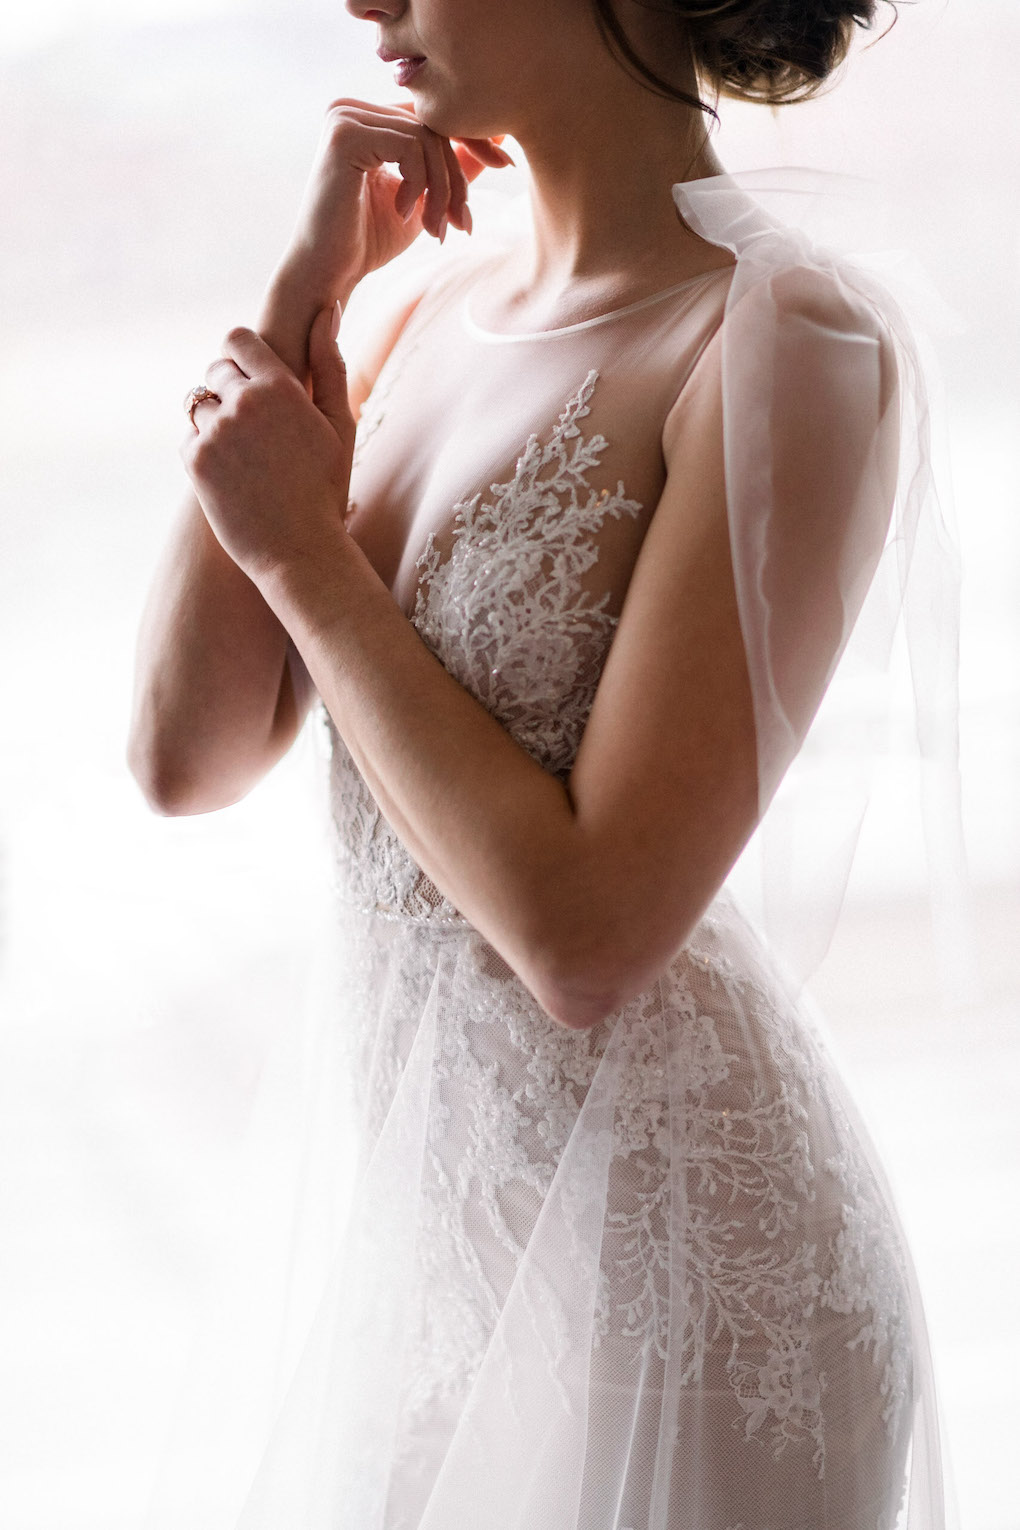 Bridal portrait ideas: Soft and Subtle Palettes of Spring Blossoms | Editorial Shoot at The Renaissance Pittsburgh by Exhale Events. See more inspiration at exhale-events.com!